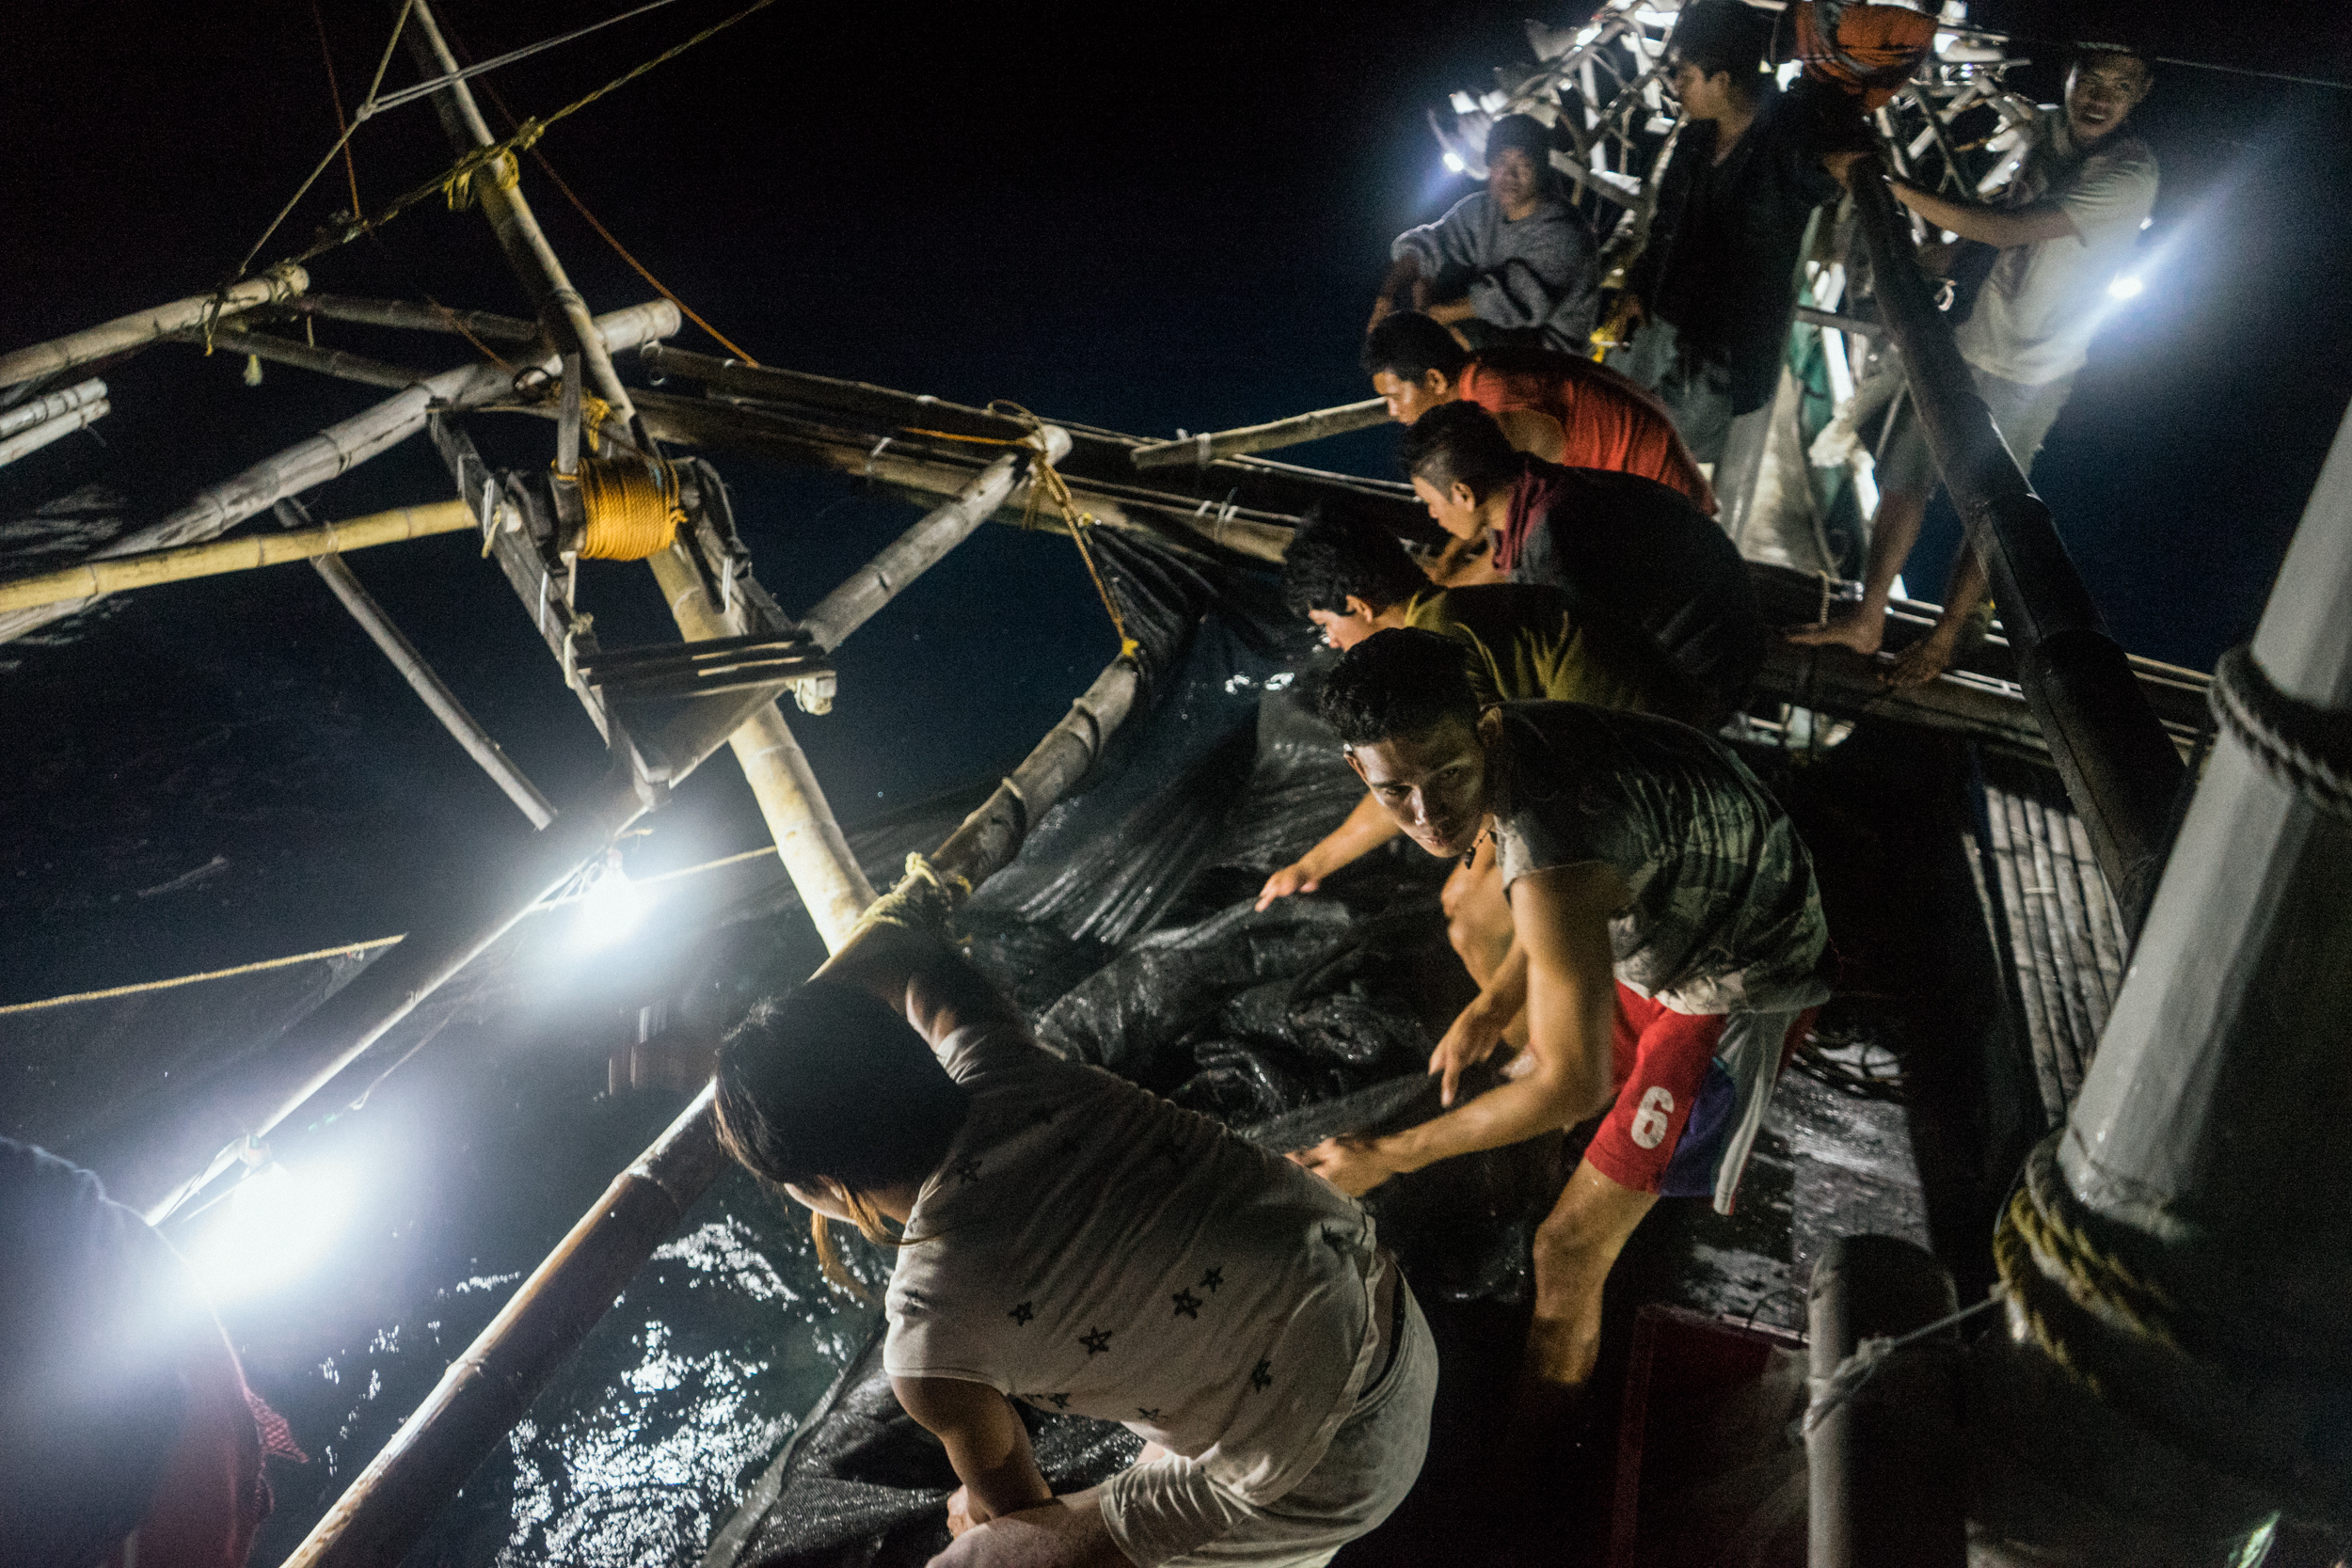 Kalibo, Philippines - September 21, 2015: Fishermen work in a local fishing boat. Members of the crew, who make approximately 35 USD per month, have expressed their desire to work on a larger fishing vessel for the promise of a higher income despite stories of fellow fishermen about the forms of abuse that happen on such vessels. Hannah Reyes